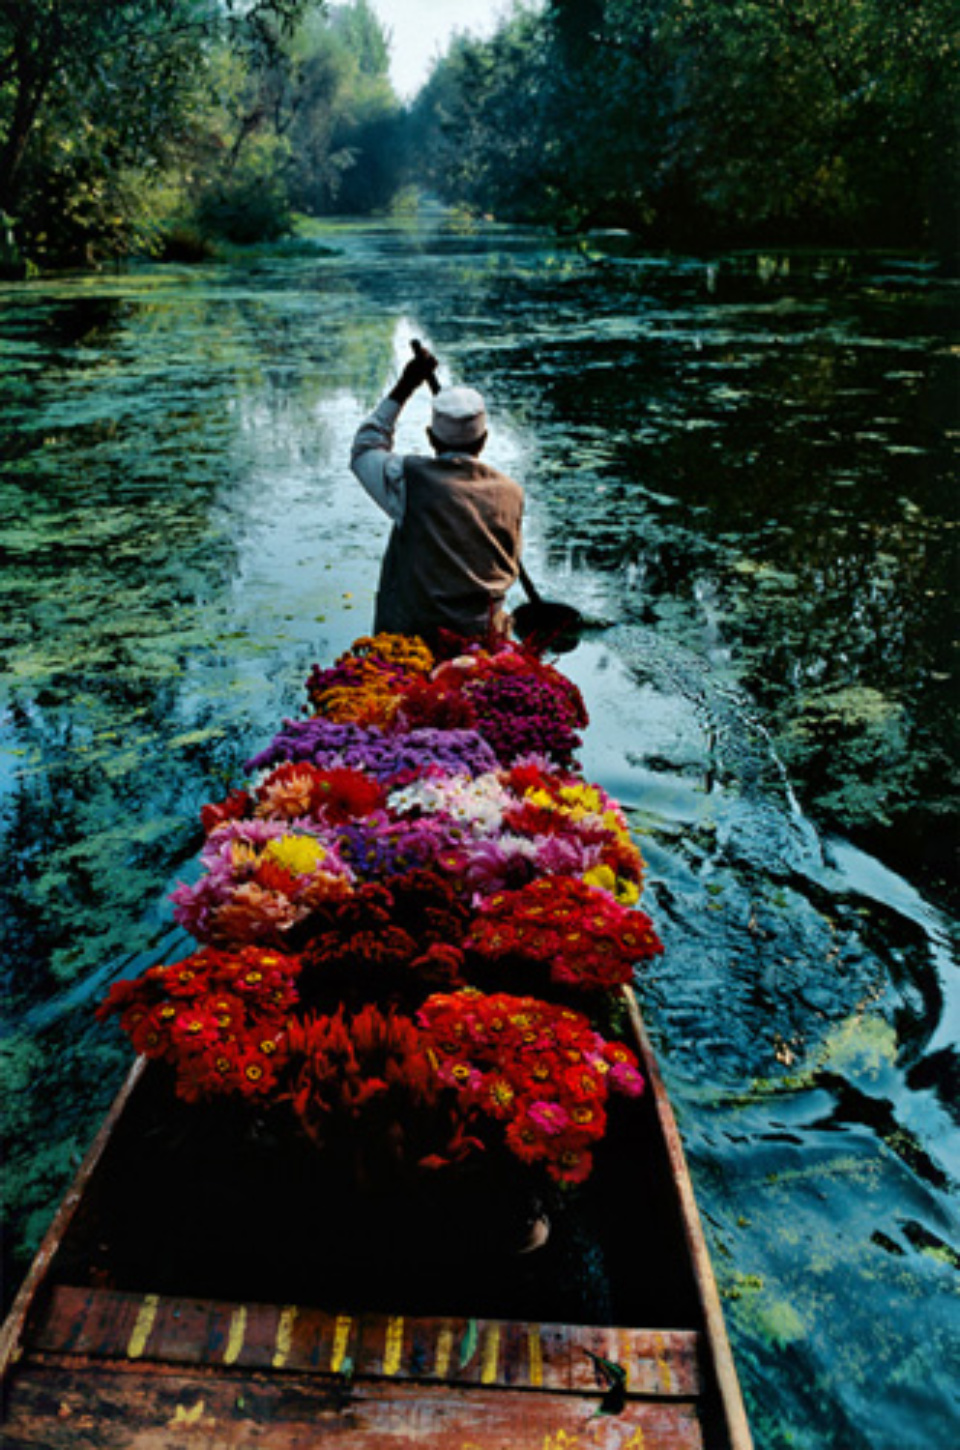 Steve McCurry: Kashmir Flower Seller Dal Lake, Srinagar, Kashmir, 1996 Signed, titled, dated and numbered on verso C-print 60 x 50 cm // 101 x 76 cm Editioned